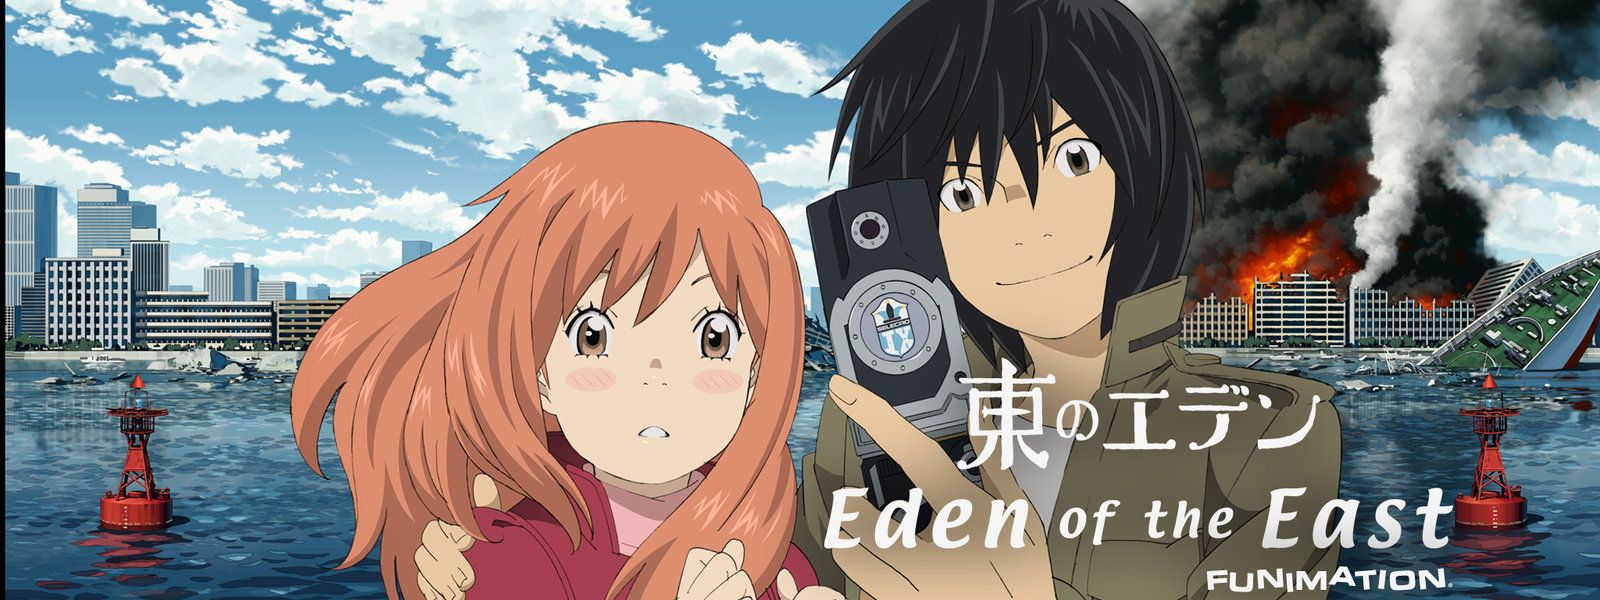 Eden of the East Mystery tv shows, Drama tv shows